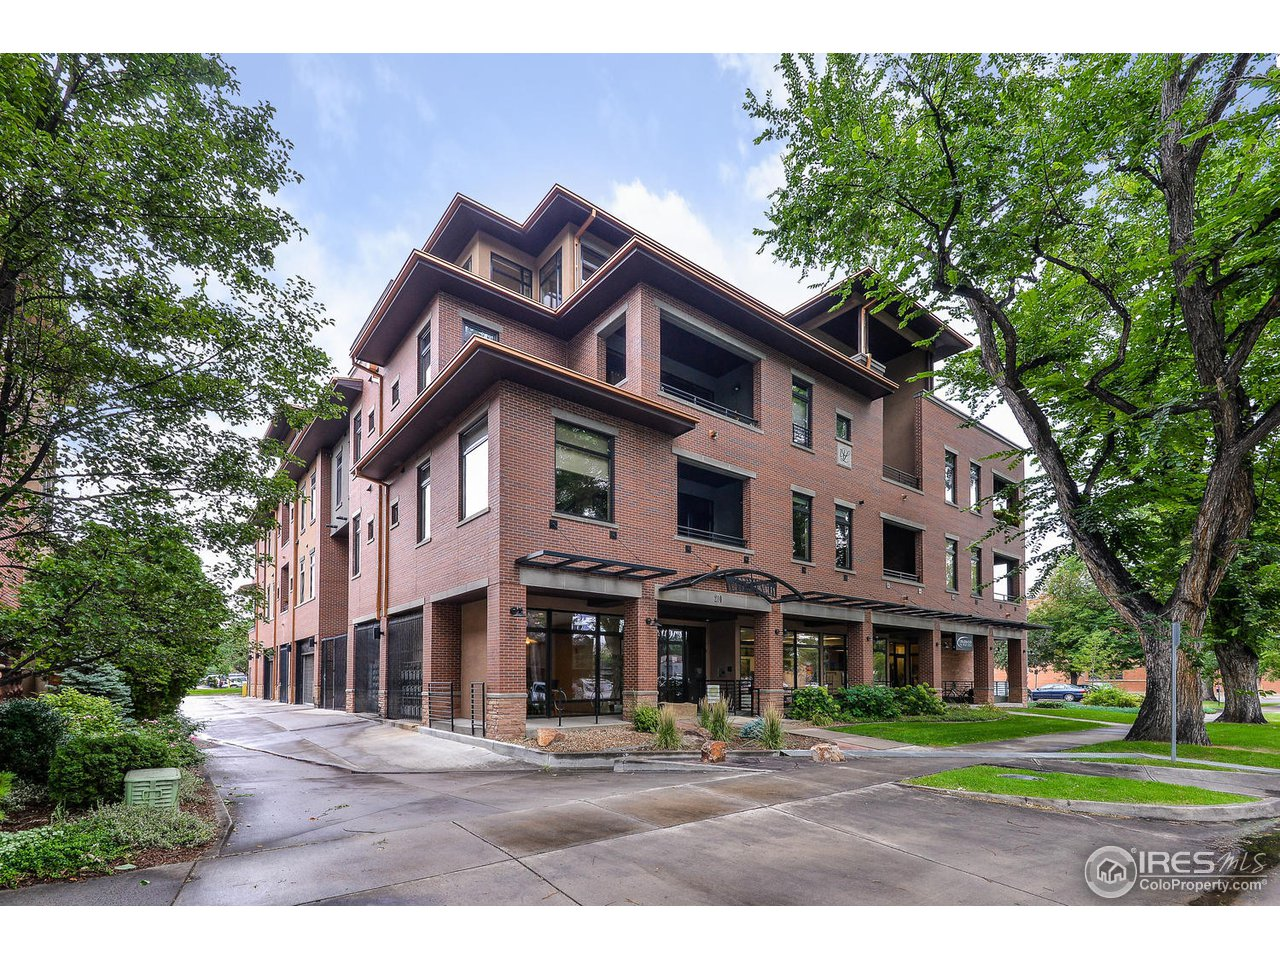 210 W Magnolia St 220, Fort Collins CO 80521